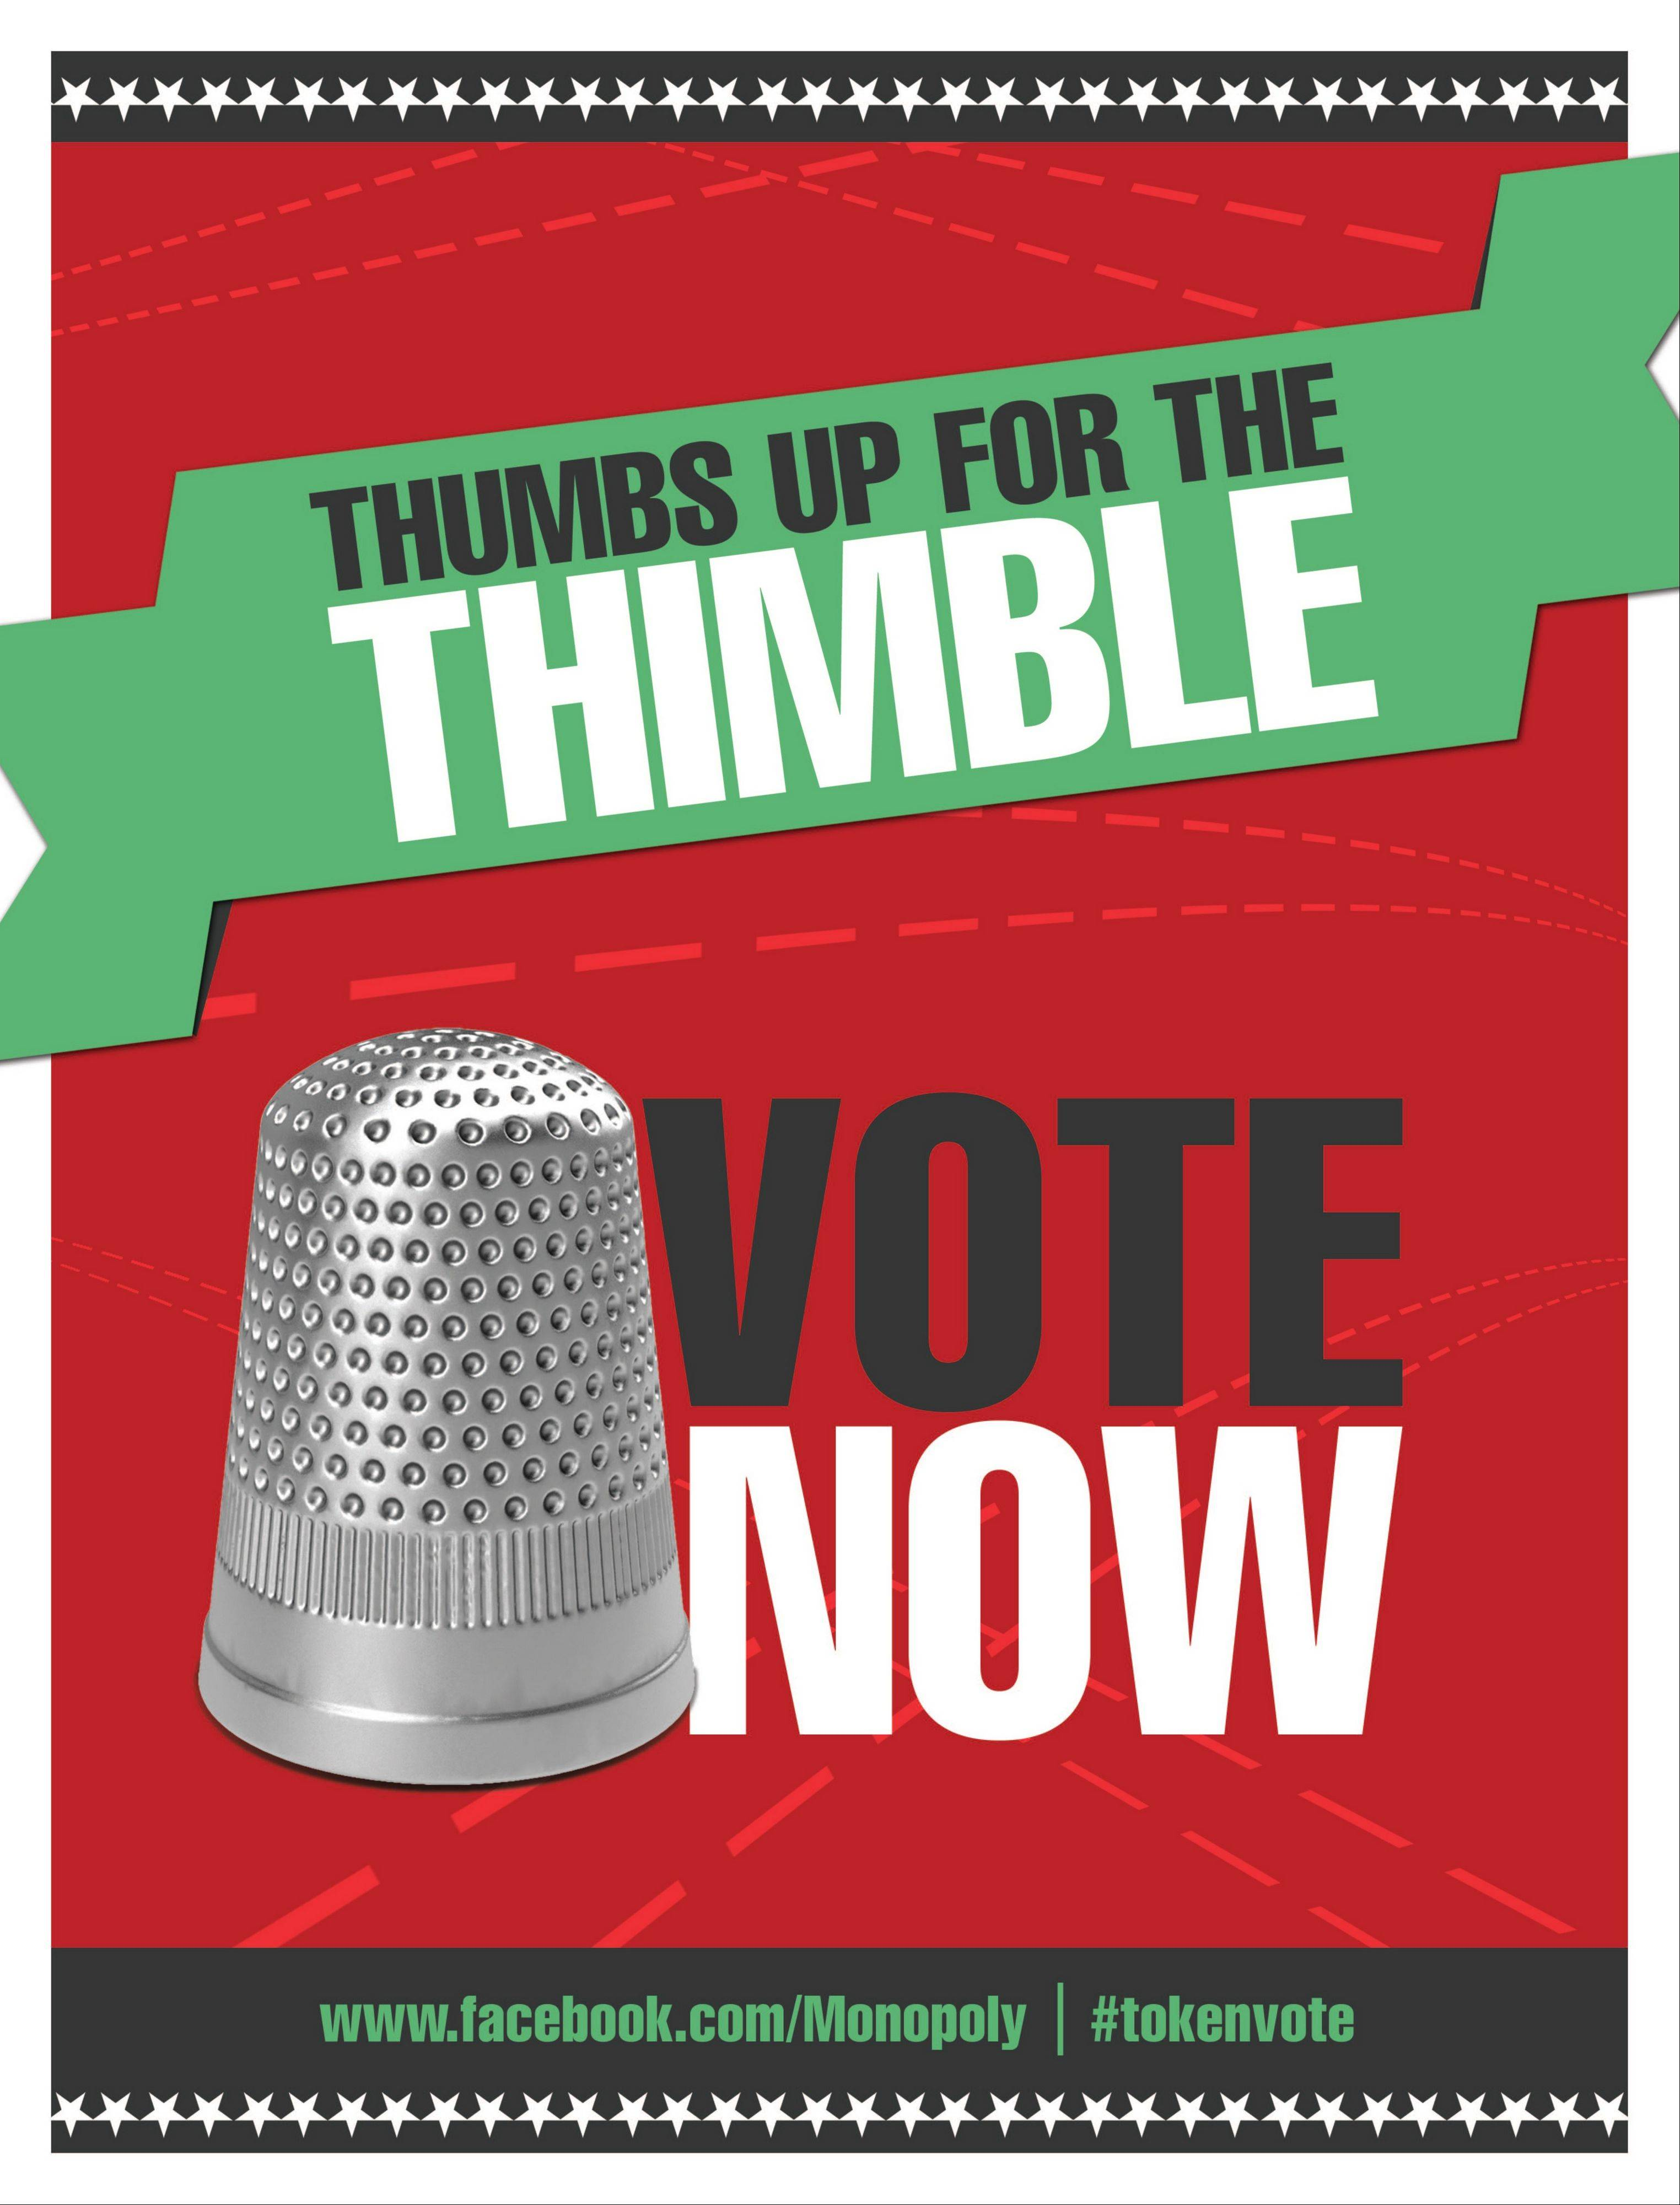 This image provided by Hasbro shows a poster encouraging people to vote for the thimble gamepiece. Makers of the classic game Monopoly want players to �take a chance� on a new token. In an effort to jazz up the board game, which debuted around 1935, Hasbro announced Wednesday it is holding a Facebook contest to eliminate one of the eight classic tokens and introduce a new one that will be decided on by a Facebook vote.